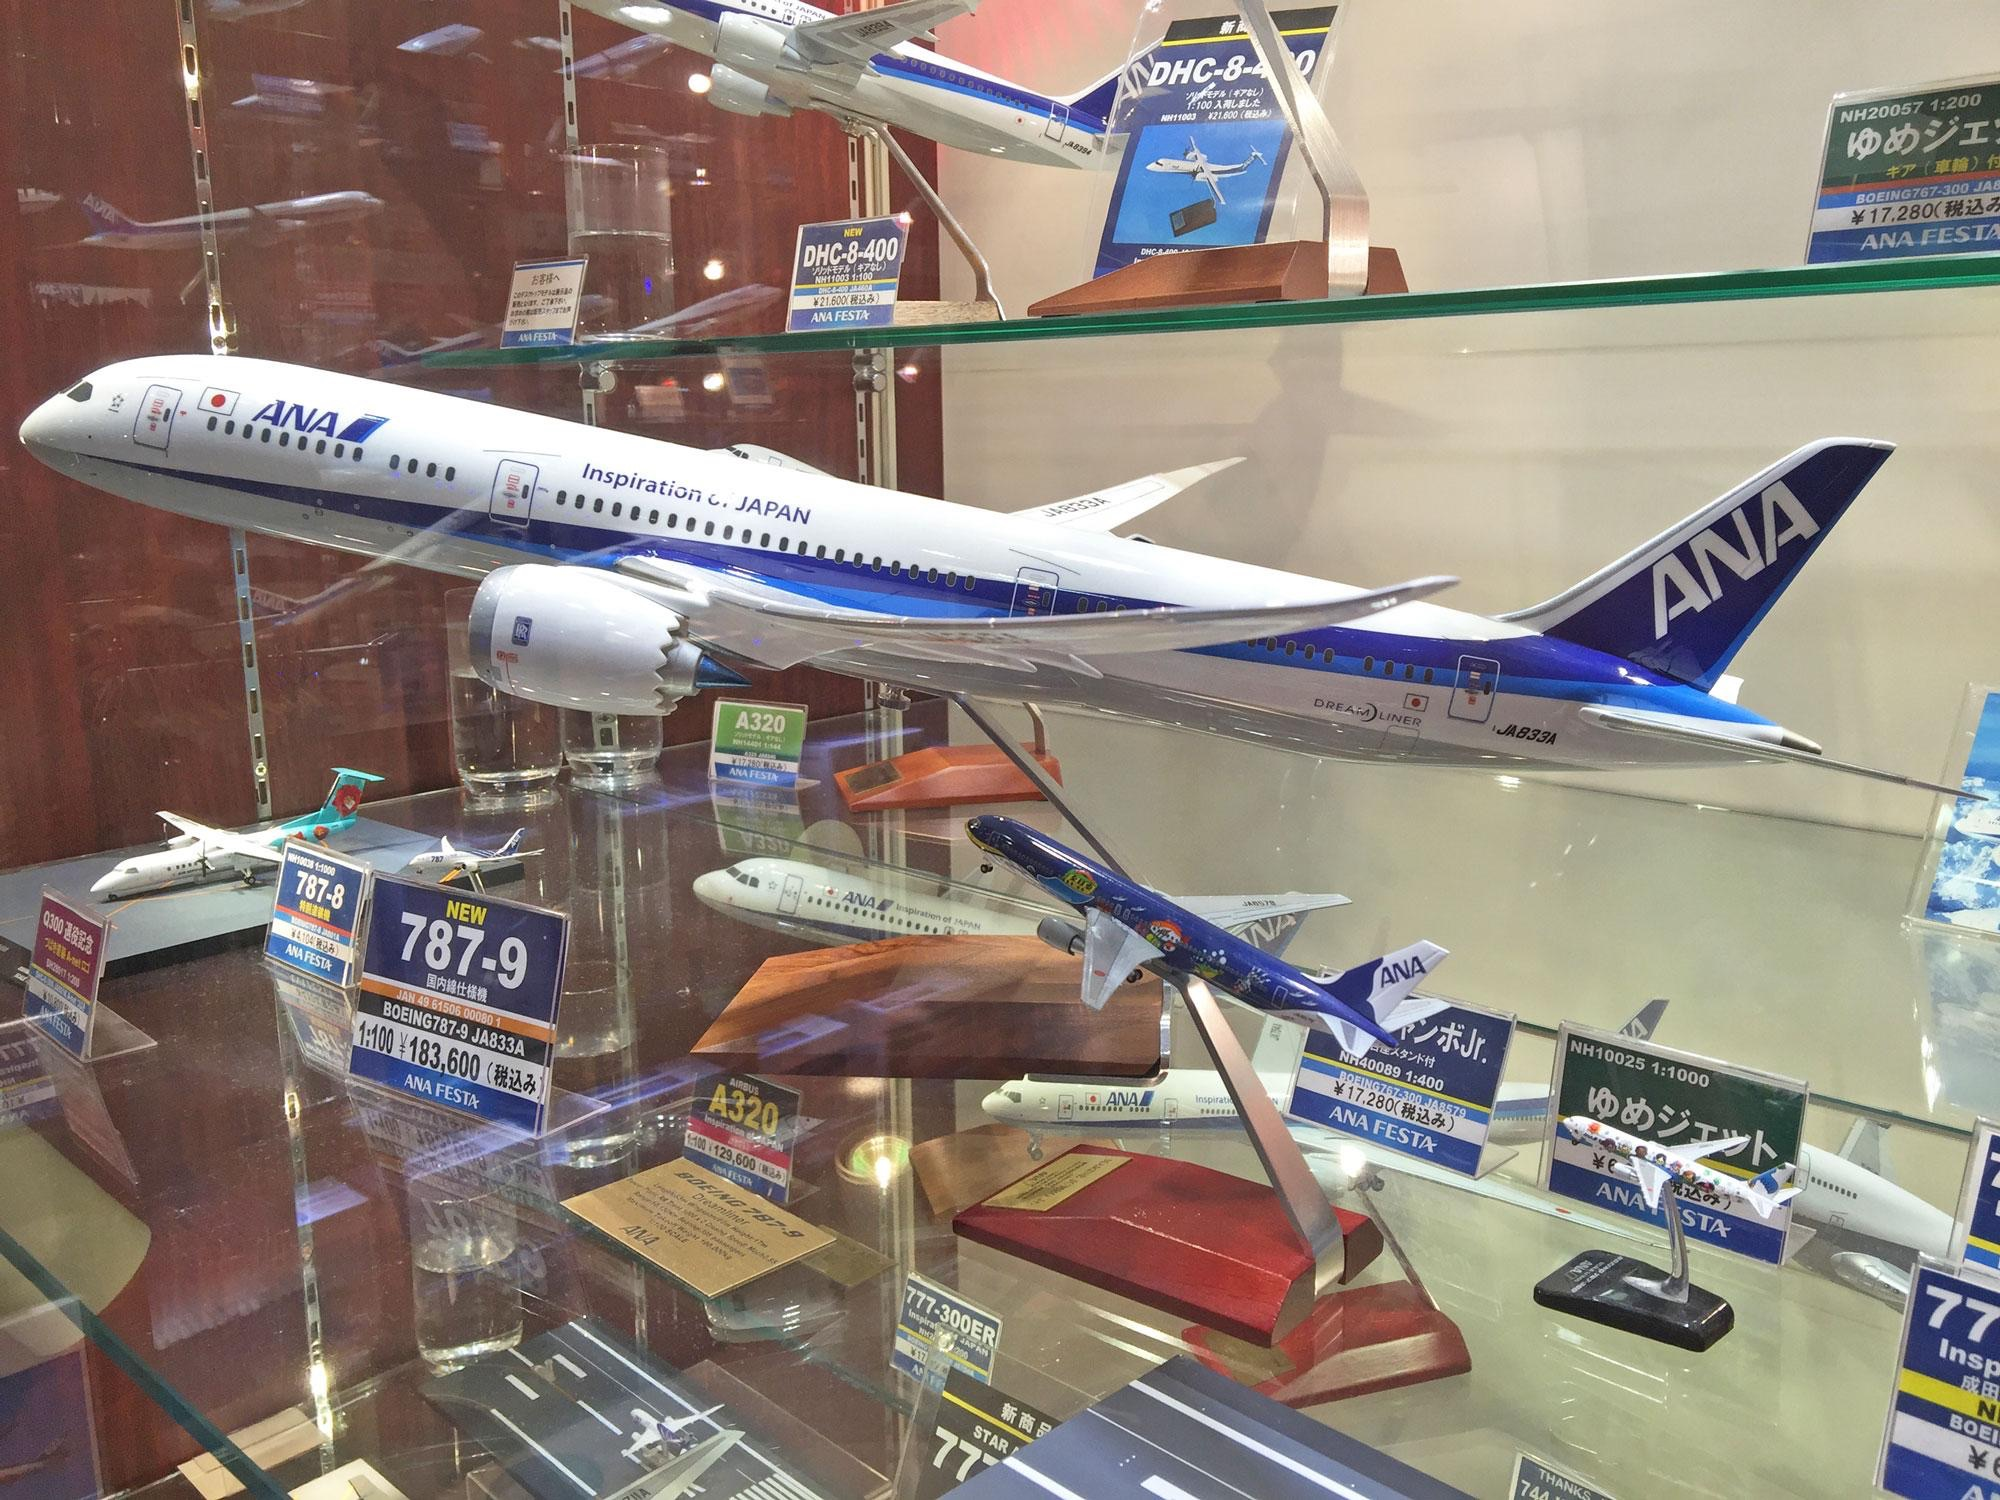 ANA FESTA shop Haneda airport lots of Pacmins: FULL REPORT lots of pics